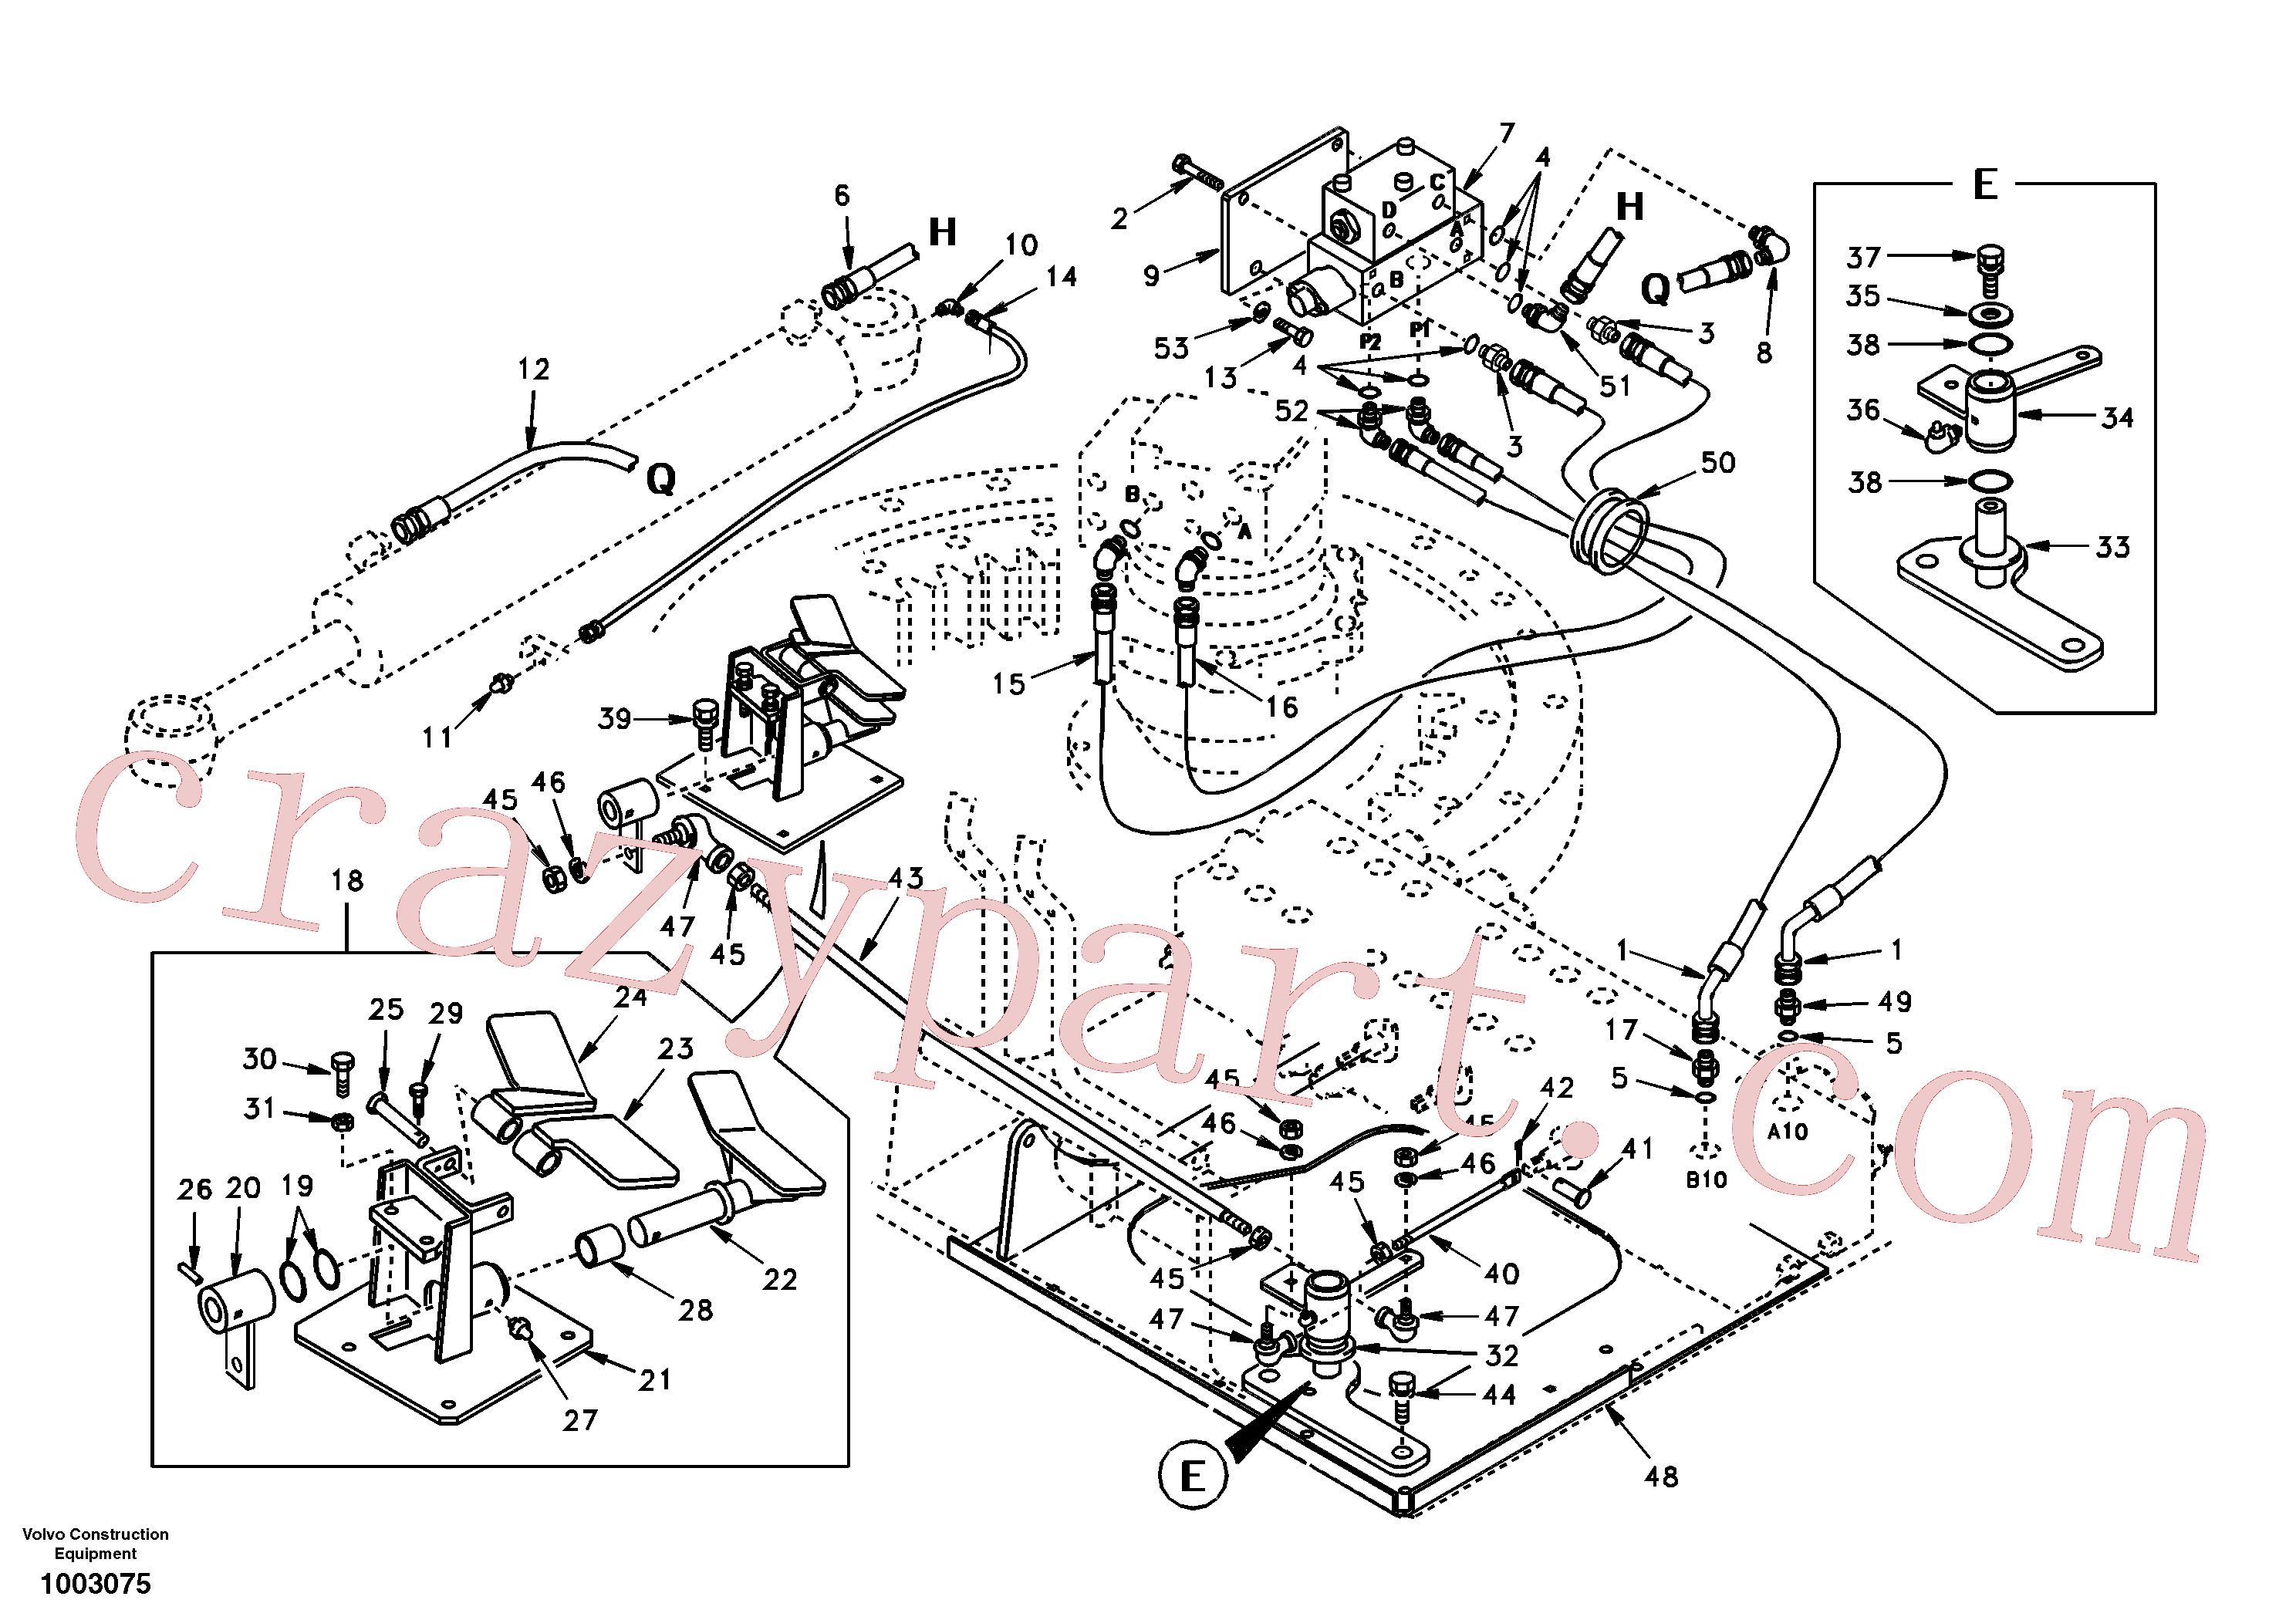 SA1138-30240 for Volvo Boom swing system(1003075 assembly)